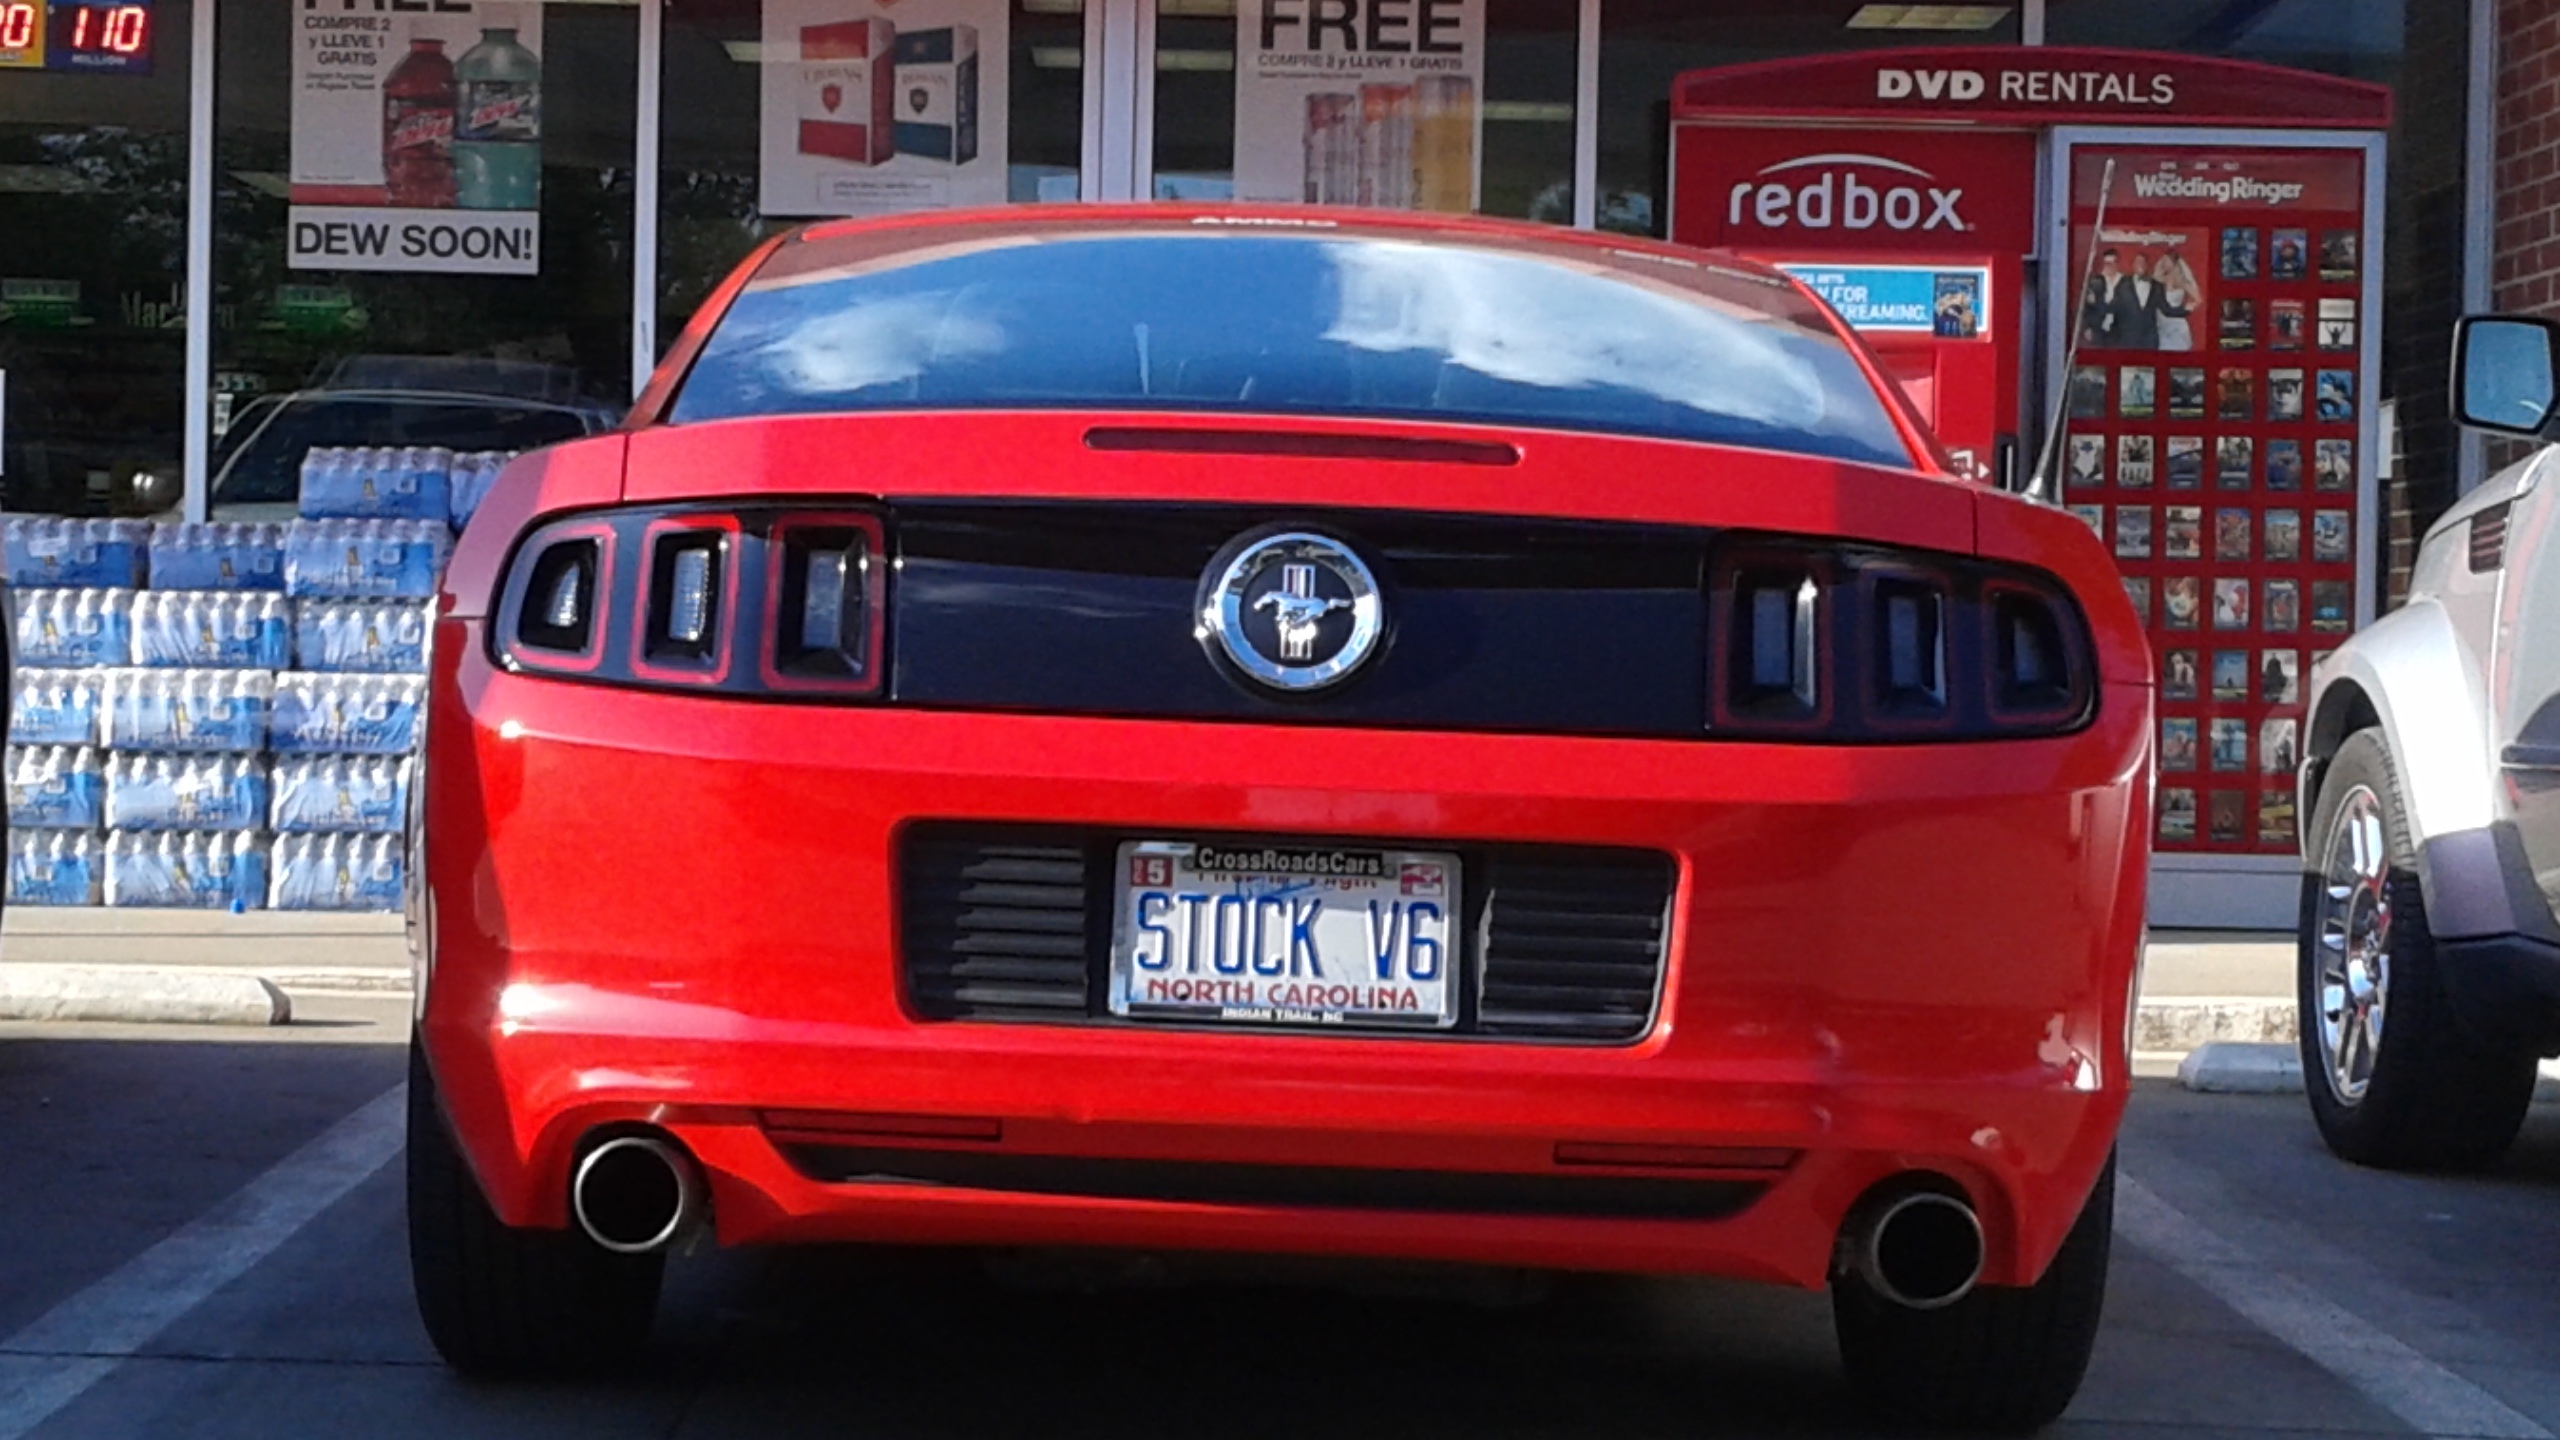 Ford Mustang With Stock V6 Plate Is One Ironic Pony